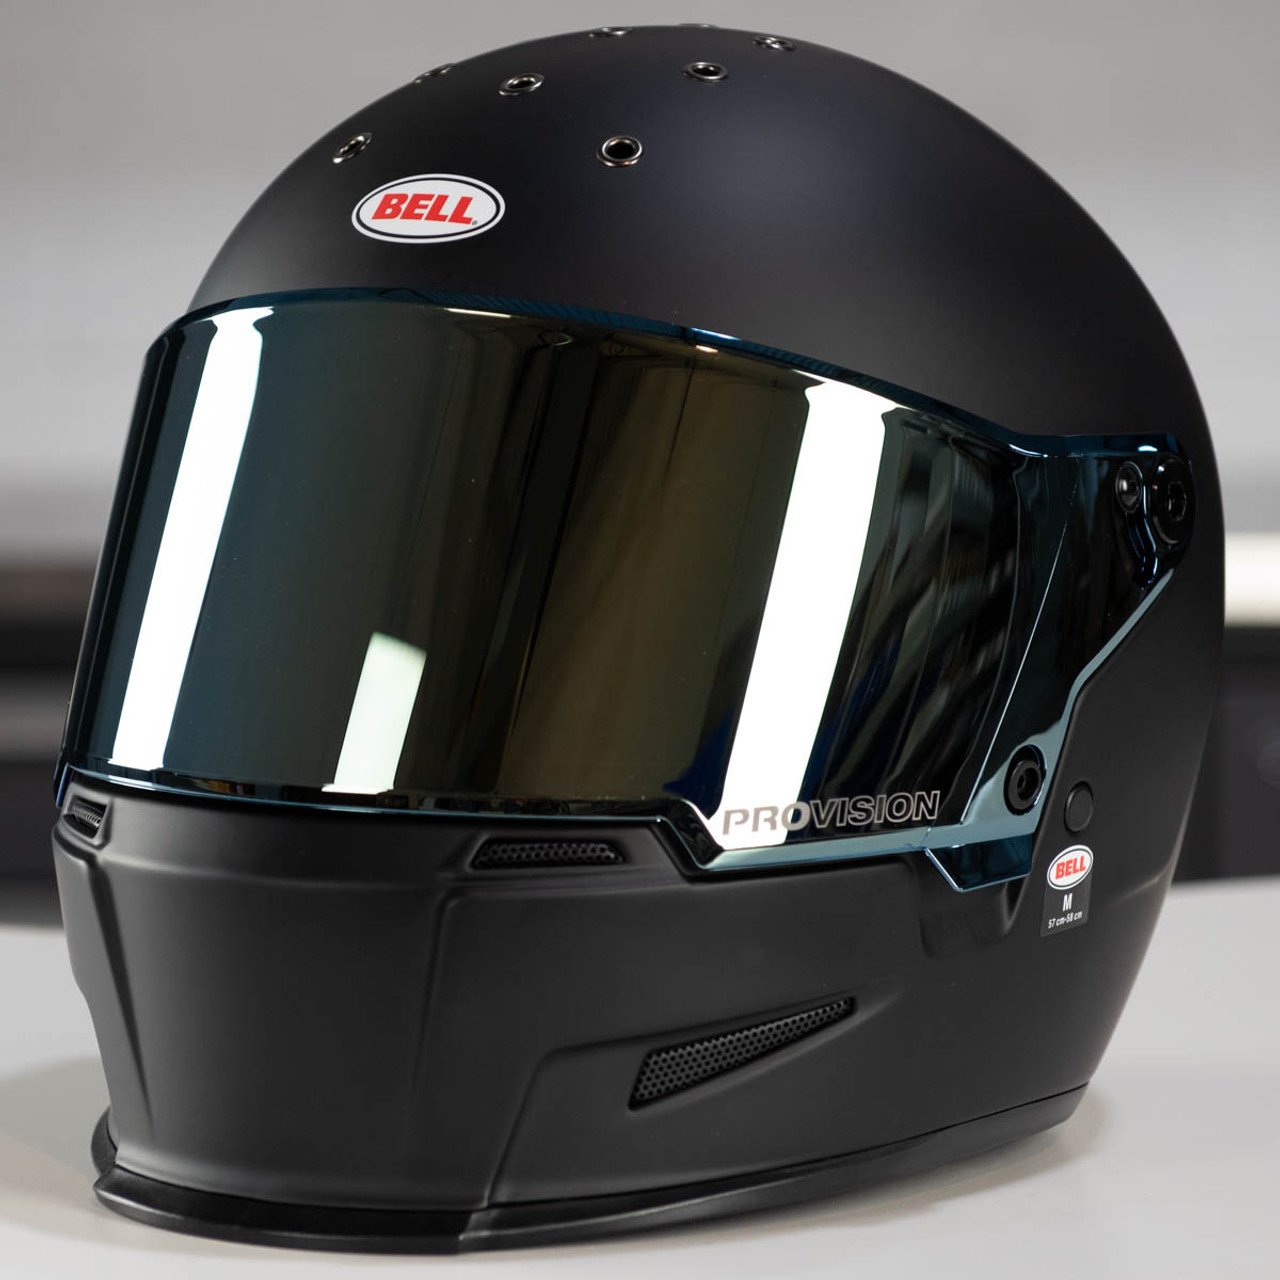 04eaf29e Bell Eliminator Gold Iridium Face Shield - 7102289 - Get Lowered Cycles